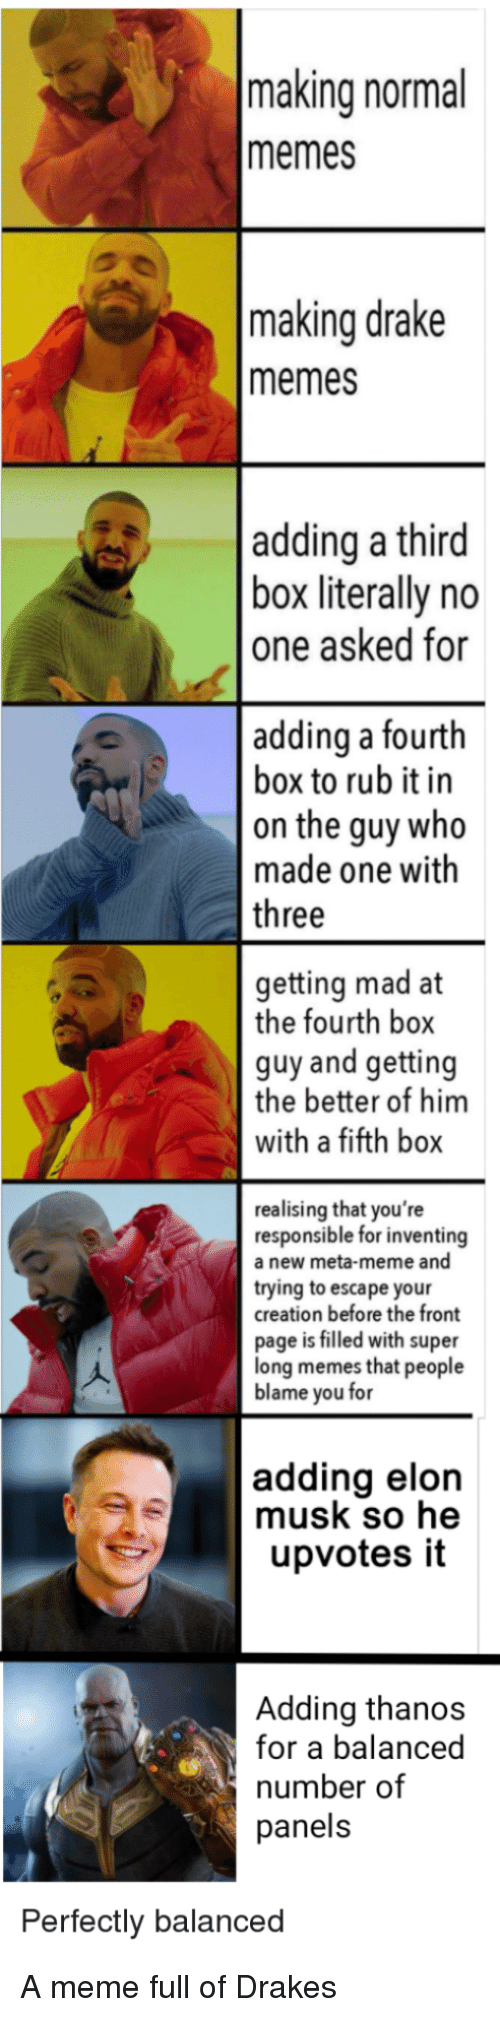 Drake, Meme, and Memes: making normal  memes  making drake  memes  adding a third  box literally no  one asked for  adding a fourth  box to rub it in  on the guy who  made one with  three  getting mad at  the fourth box  guy and getting  the better of him  with a fifth box  realising that you're  responsible for inventing  a new meta-meme and  trying to escape your  creation before the front  page is filled with super  long memes that people  blame you for  adding elon  musk so he  upvotes it  Adding thanos  for a balanced  number of  panels  Perfectly balanced A meme full of Drakes